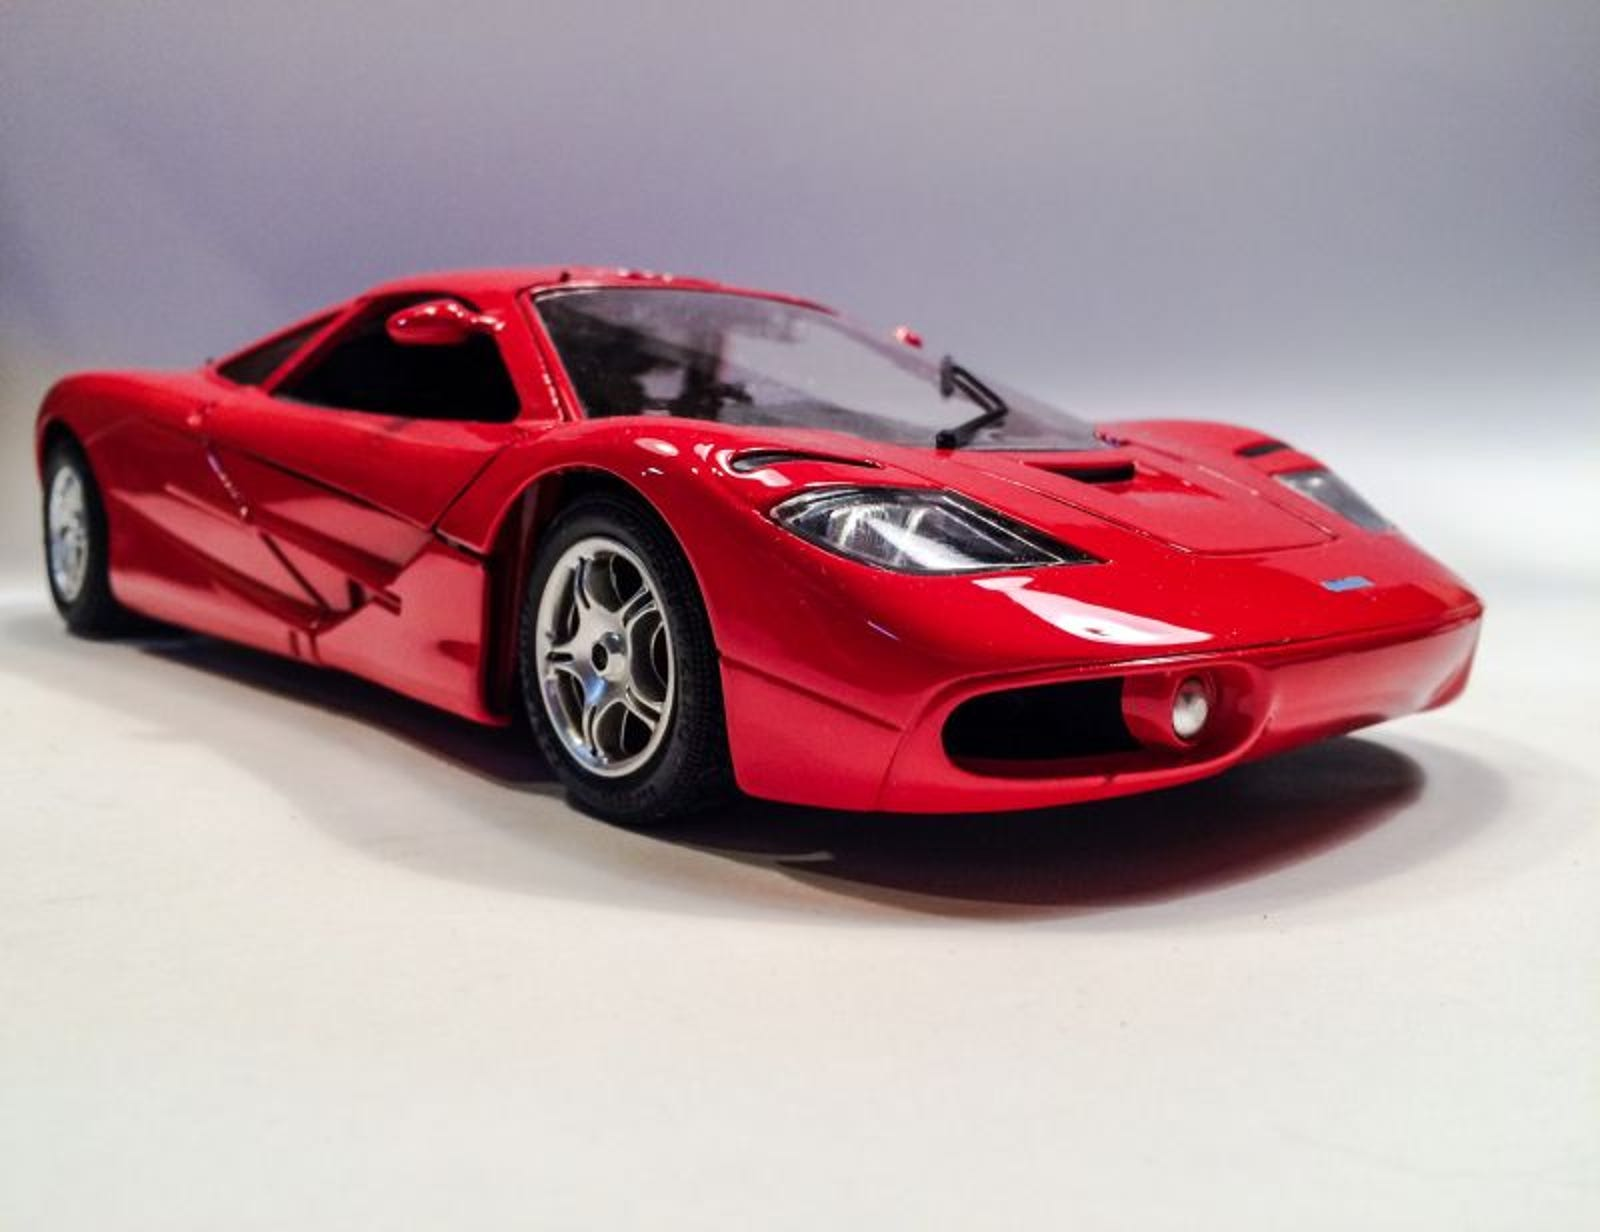 Lot 27: 1:18 Scale Guiloy Mclaren F1 Xp-1. $40 shipped - Displayed but dust free and original box included.